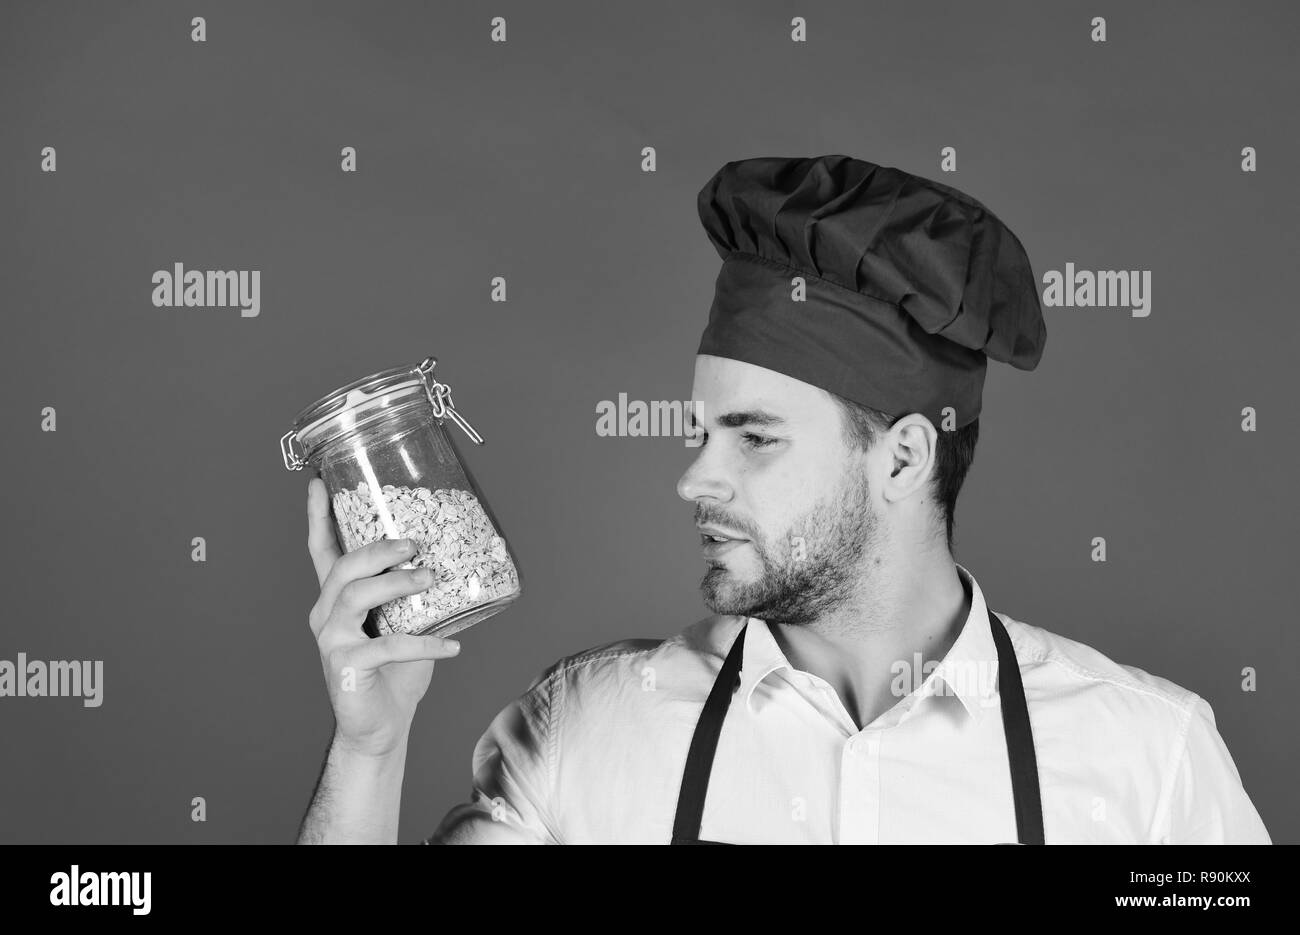 Chef in burgundy uniform holds jar with groats. Breakfast and healthy food concept. Cook with thoughtful face and jar. Man with beard holds glass jar with porridge on red background. - Stock Image